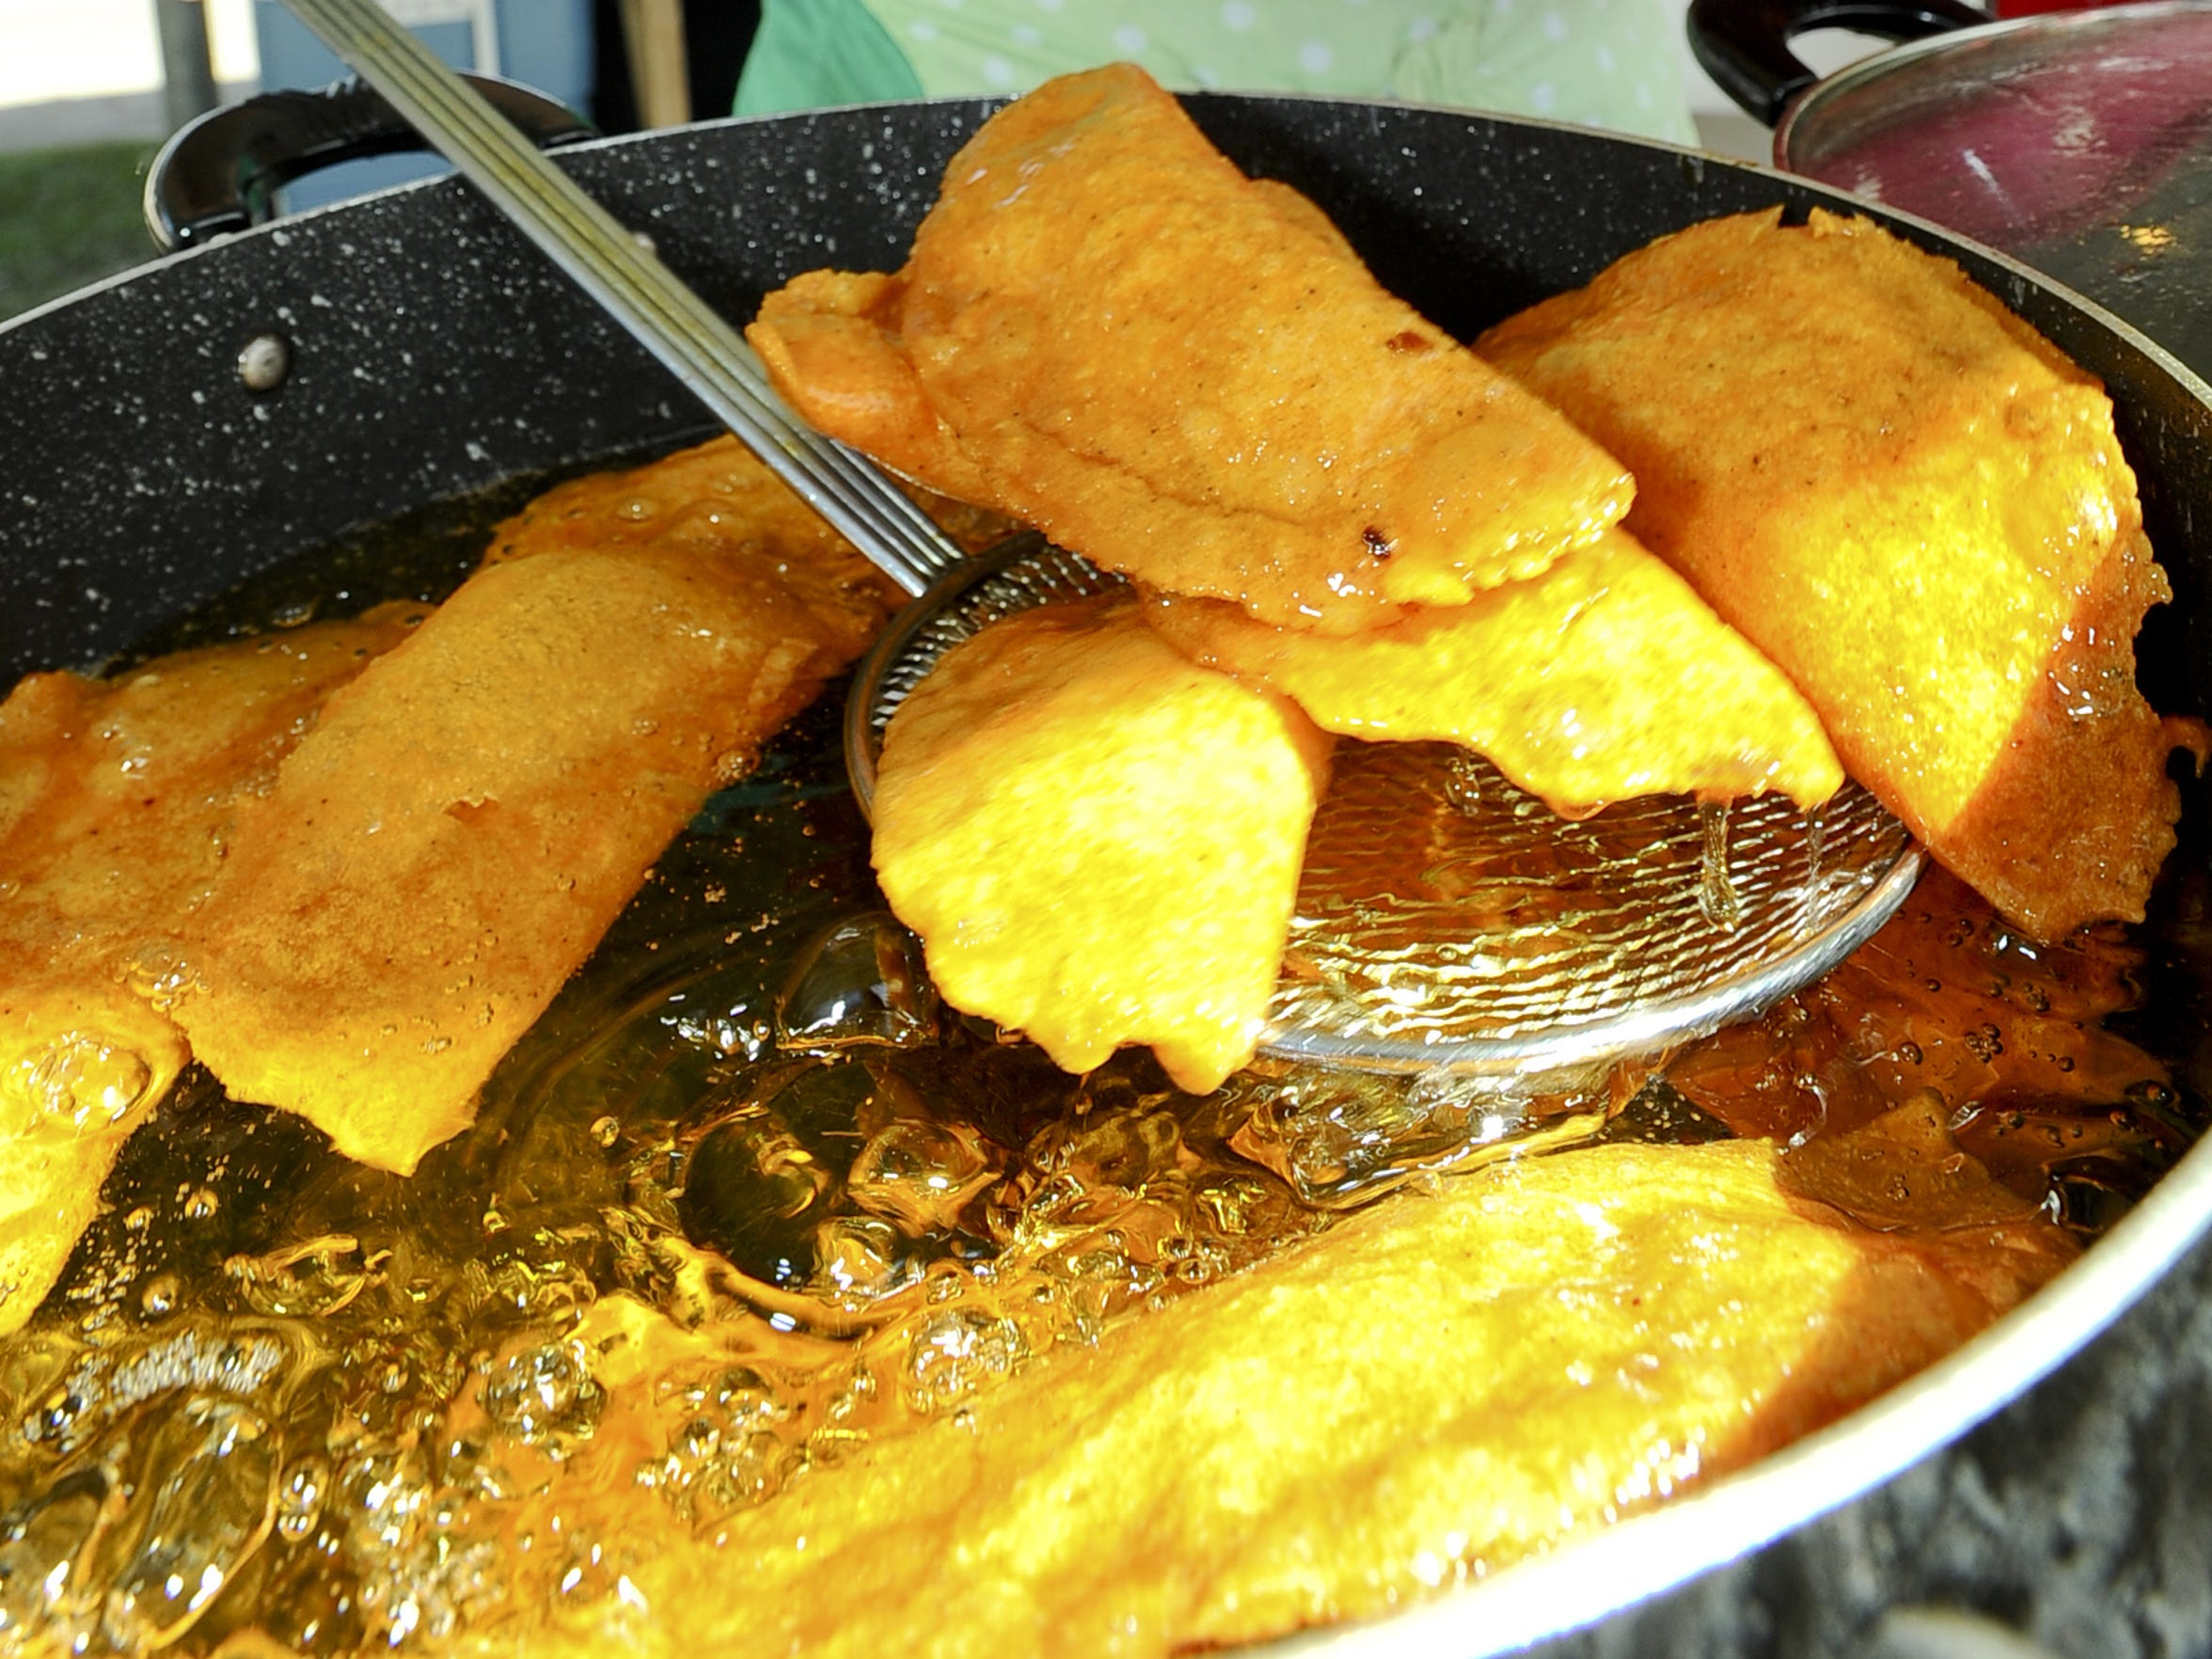 For your empanada cravings, head to Pika Best of Guam